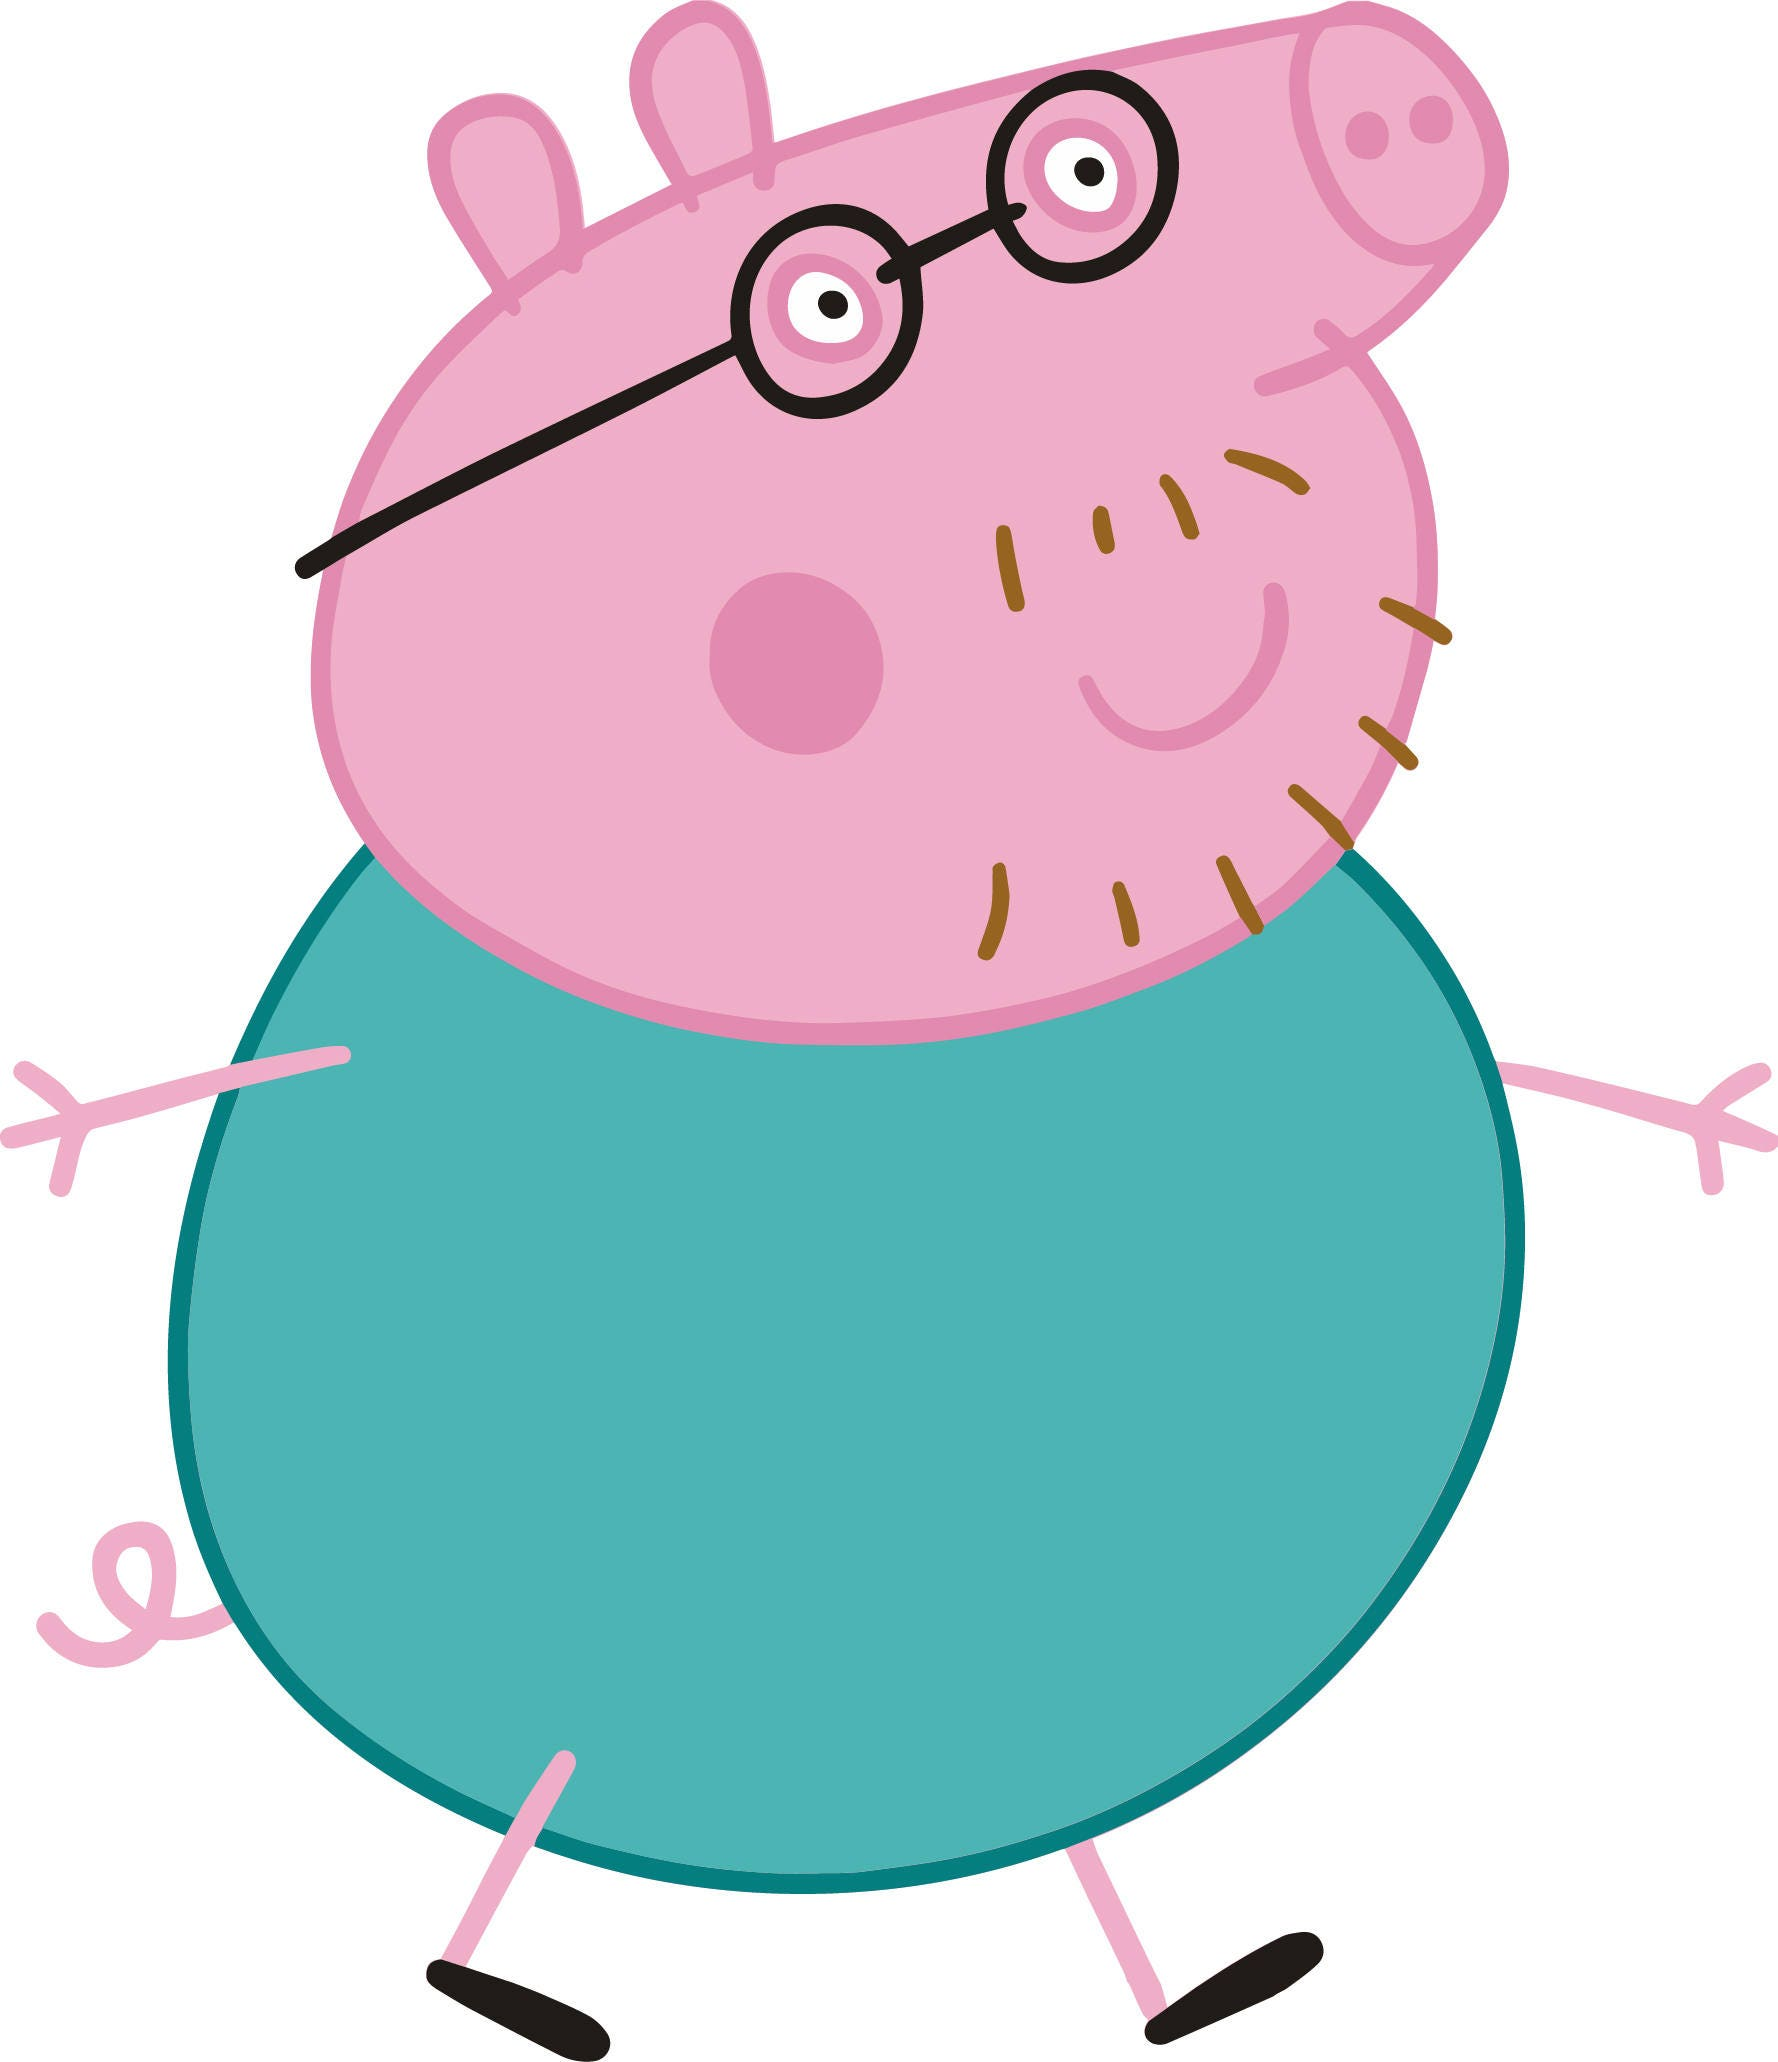 Sale Daddy Pig Peppa Pig S For Cutting And Printing Layered